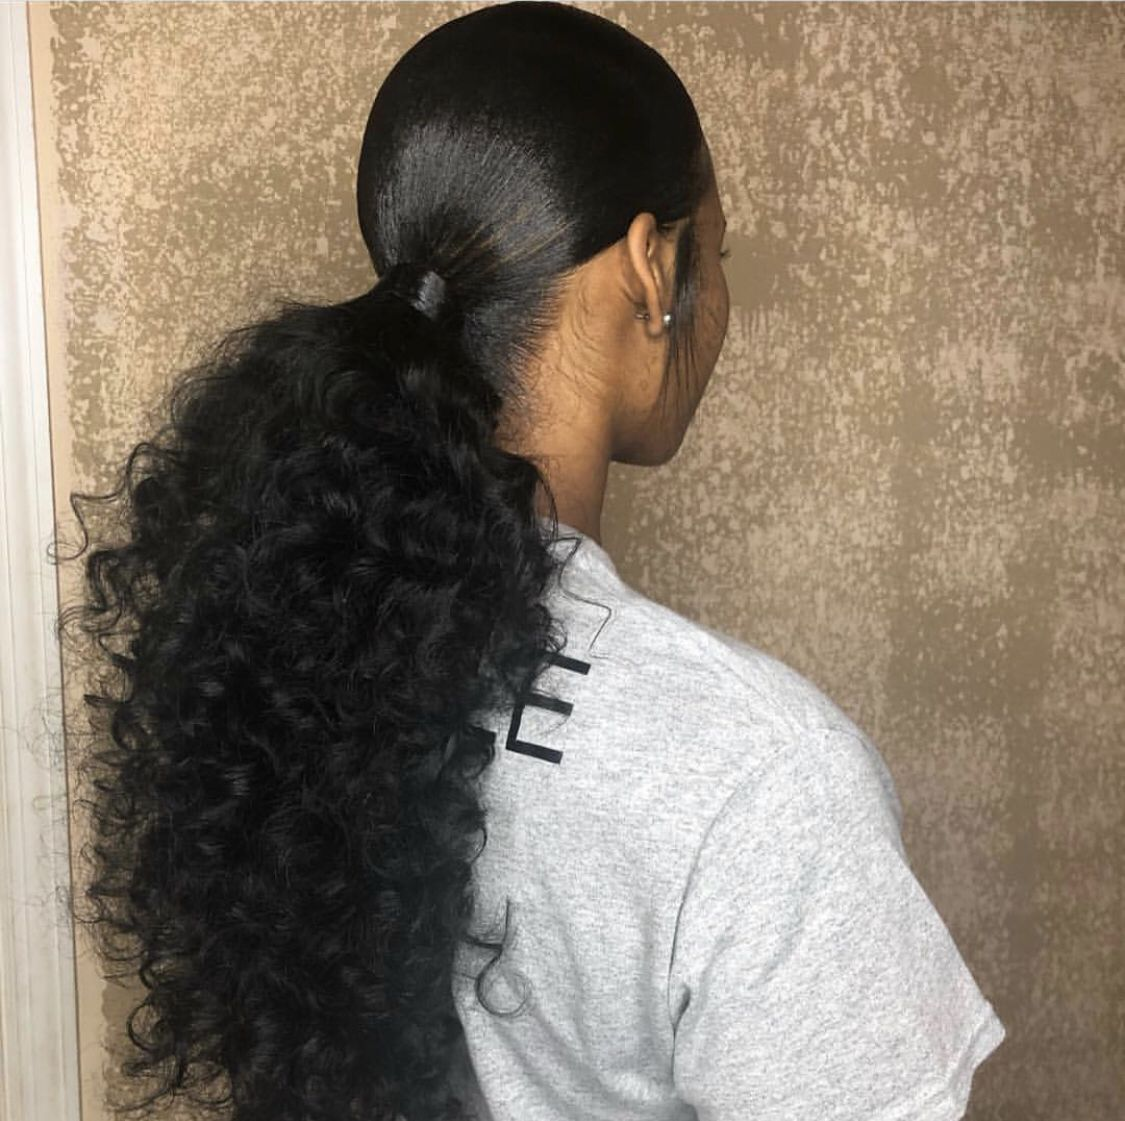 How To Do A Quick Weave Ponytail Step By Step At Home Hair Ponytail Styles Long Ponytail Hairstyles Weave Ponytail Hairstyles